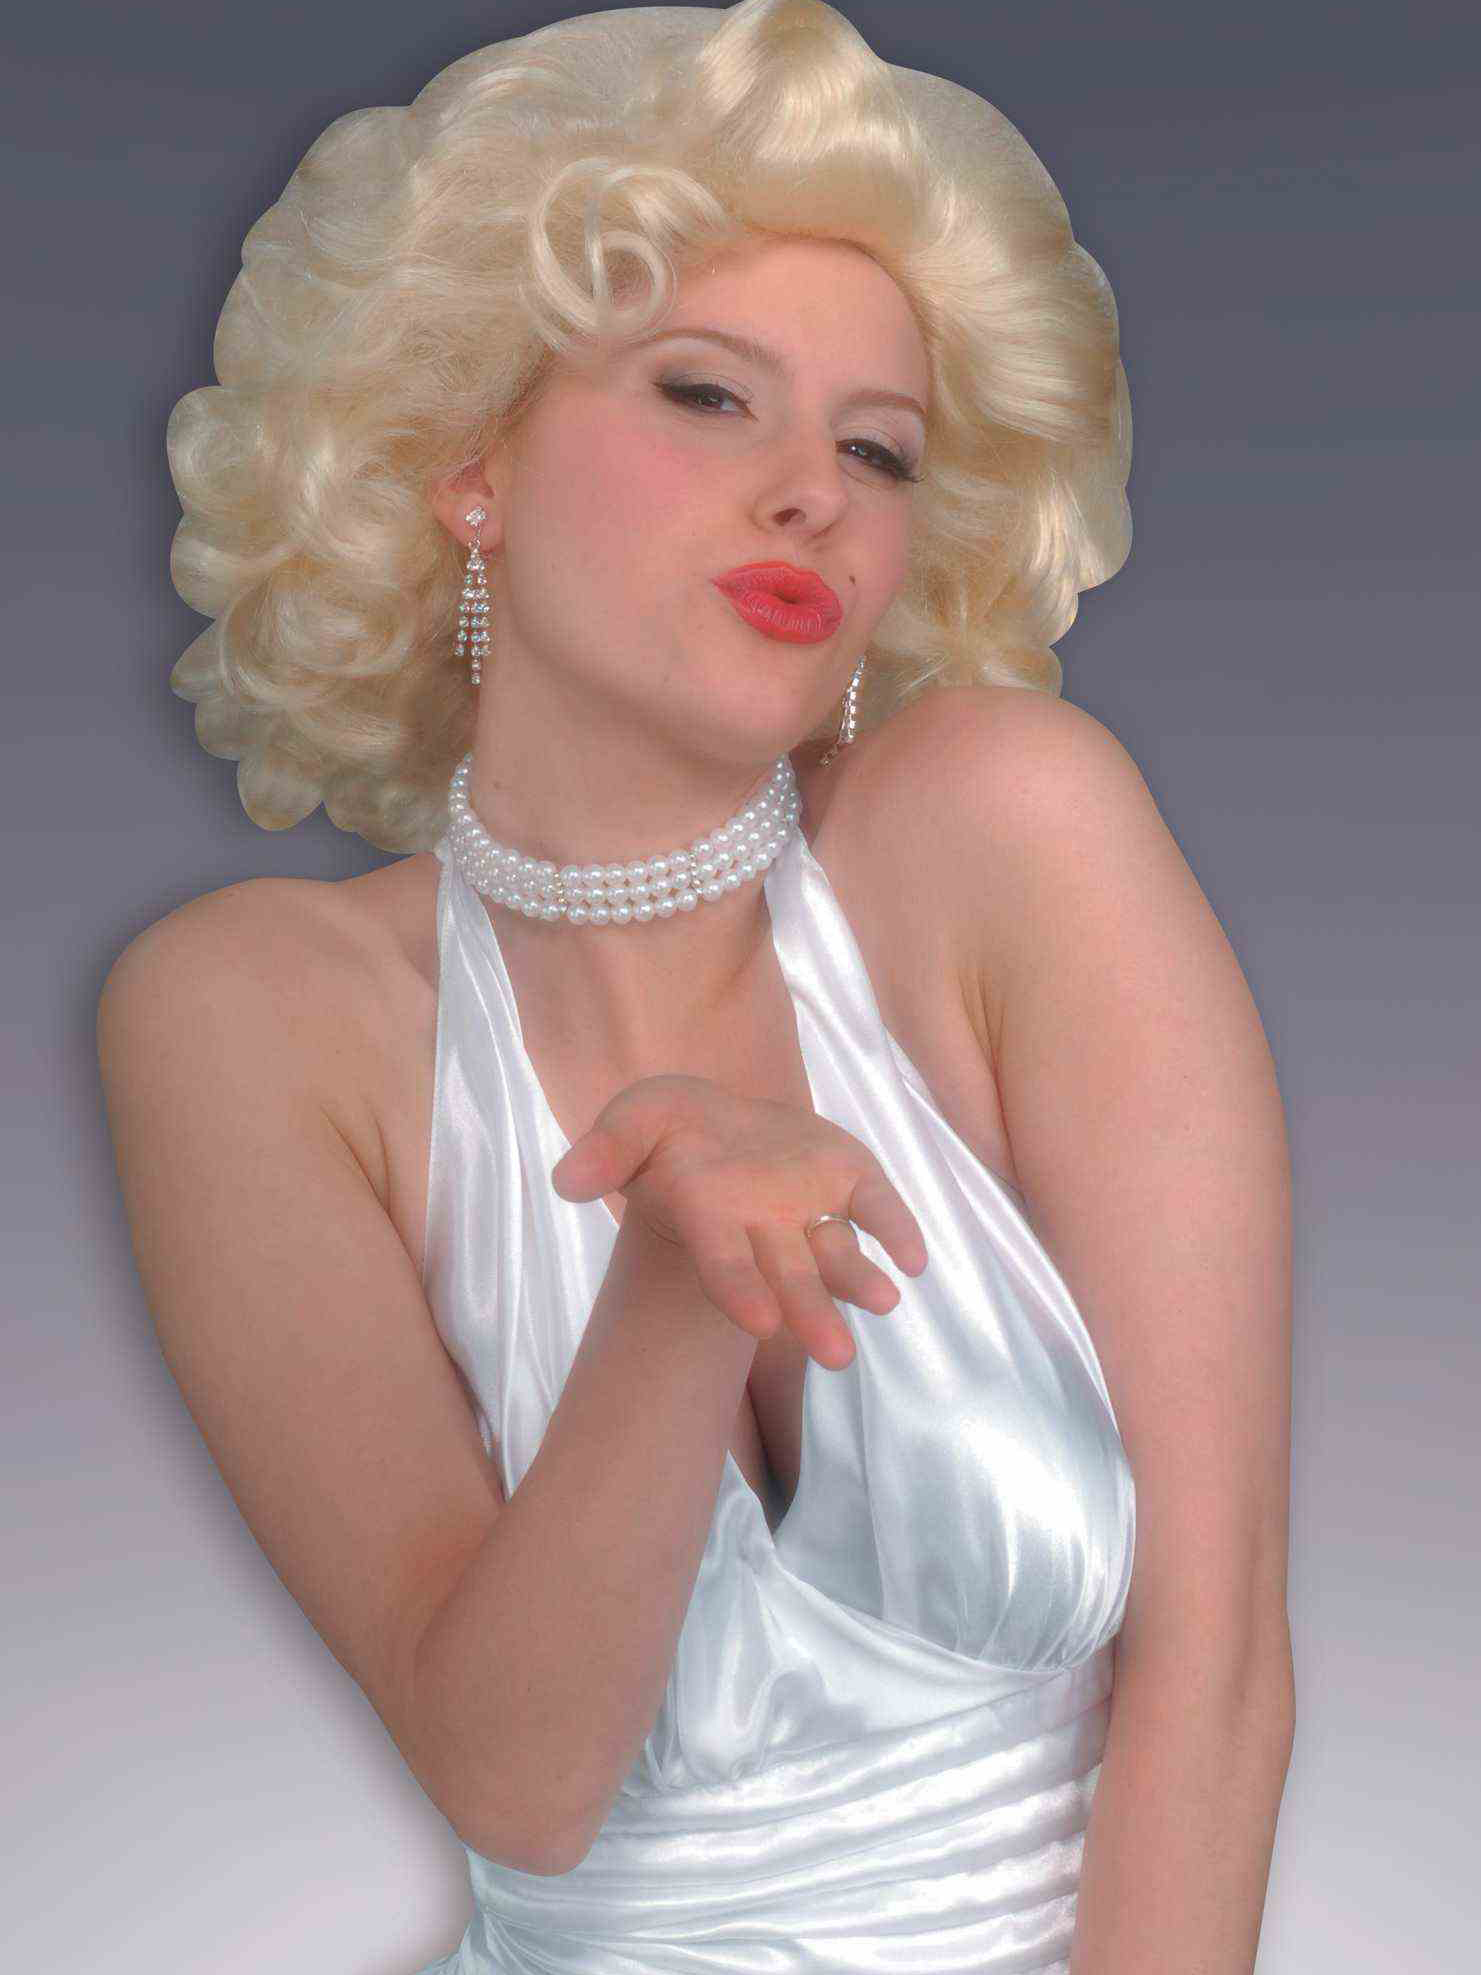 adult lady in marilyn monroe dress and pearls